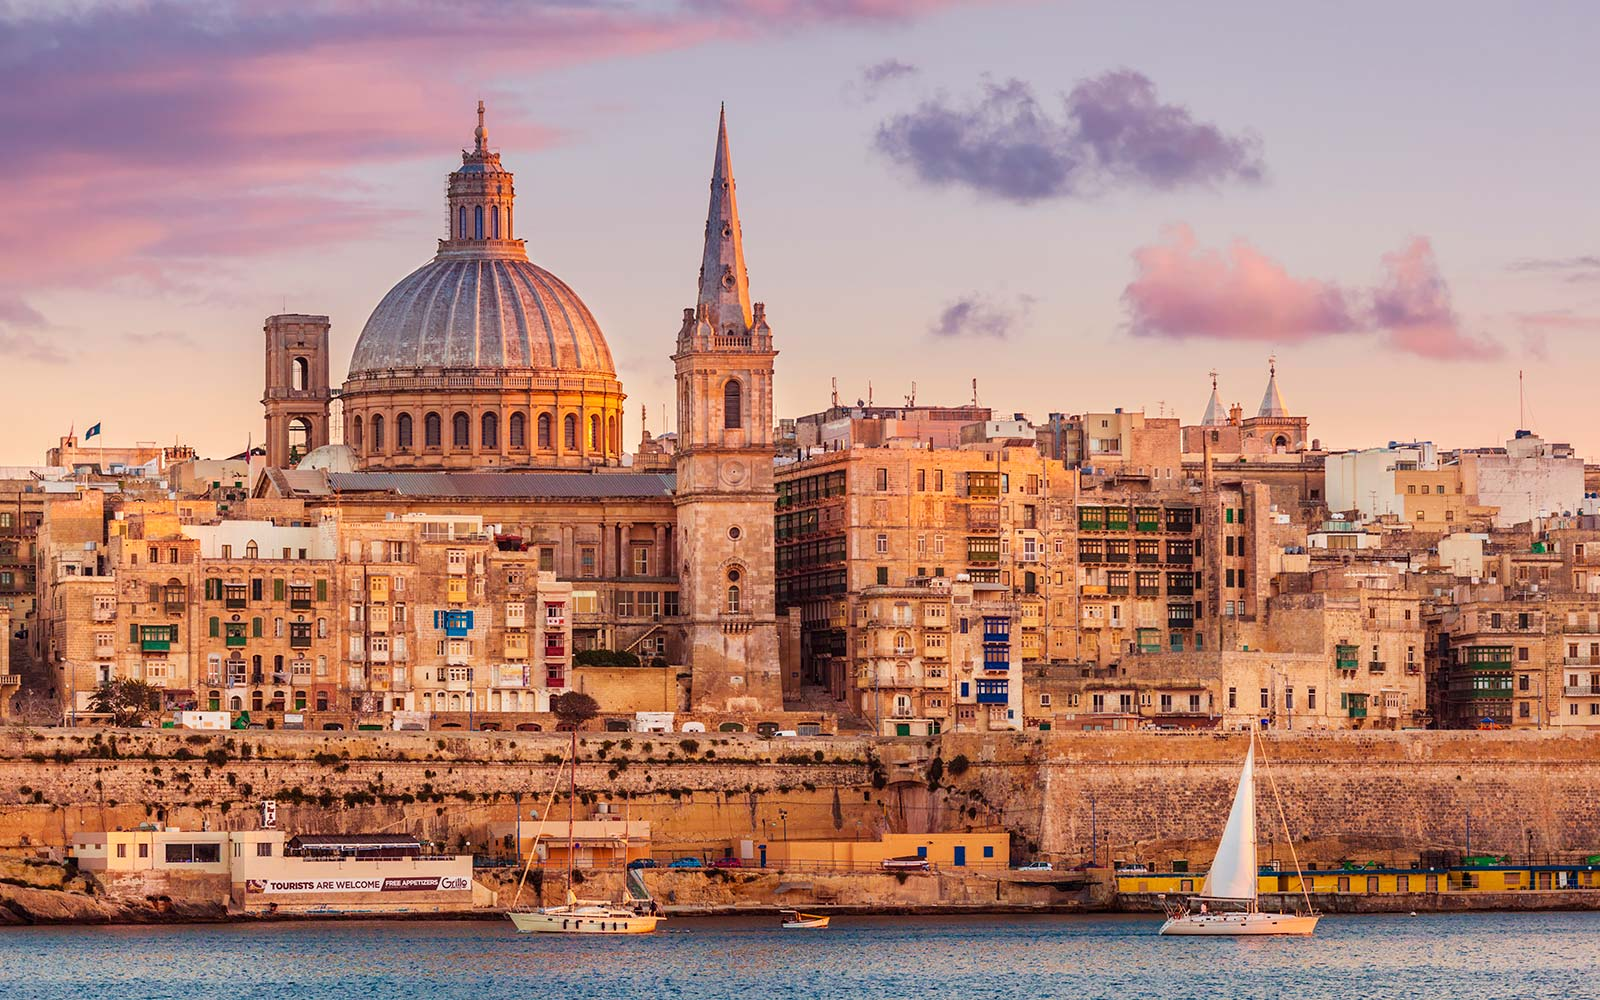 Valletta skyline at sunset with the Carmelite Church dome and St. Pauls Anglican Cathedral, Valletta, Malta, Mediterranean, Europe Viking Cruises